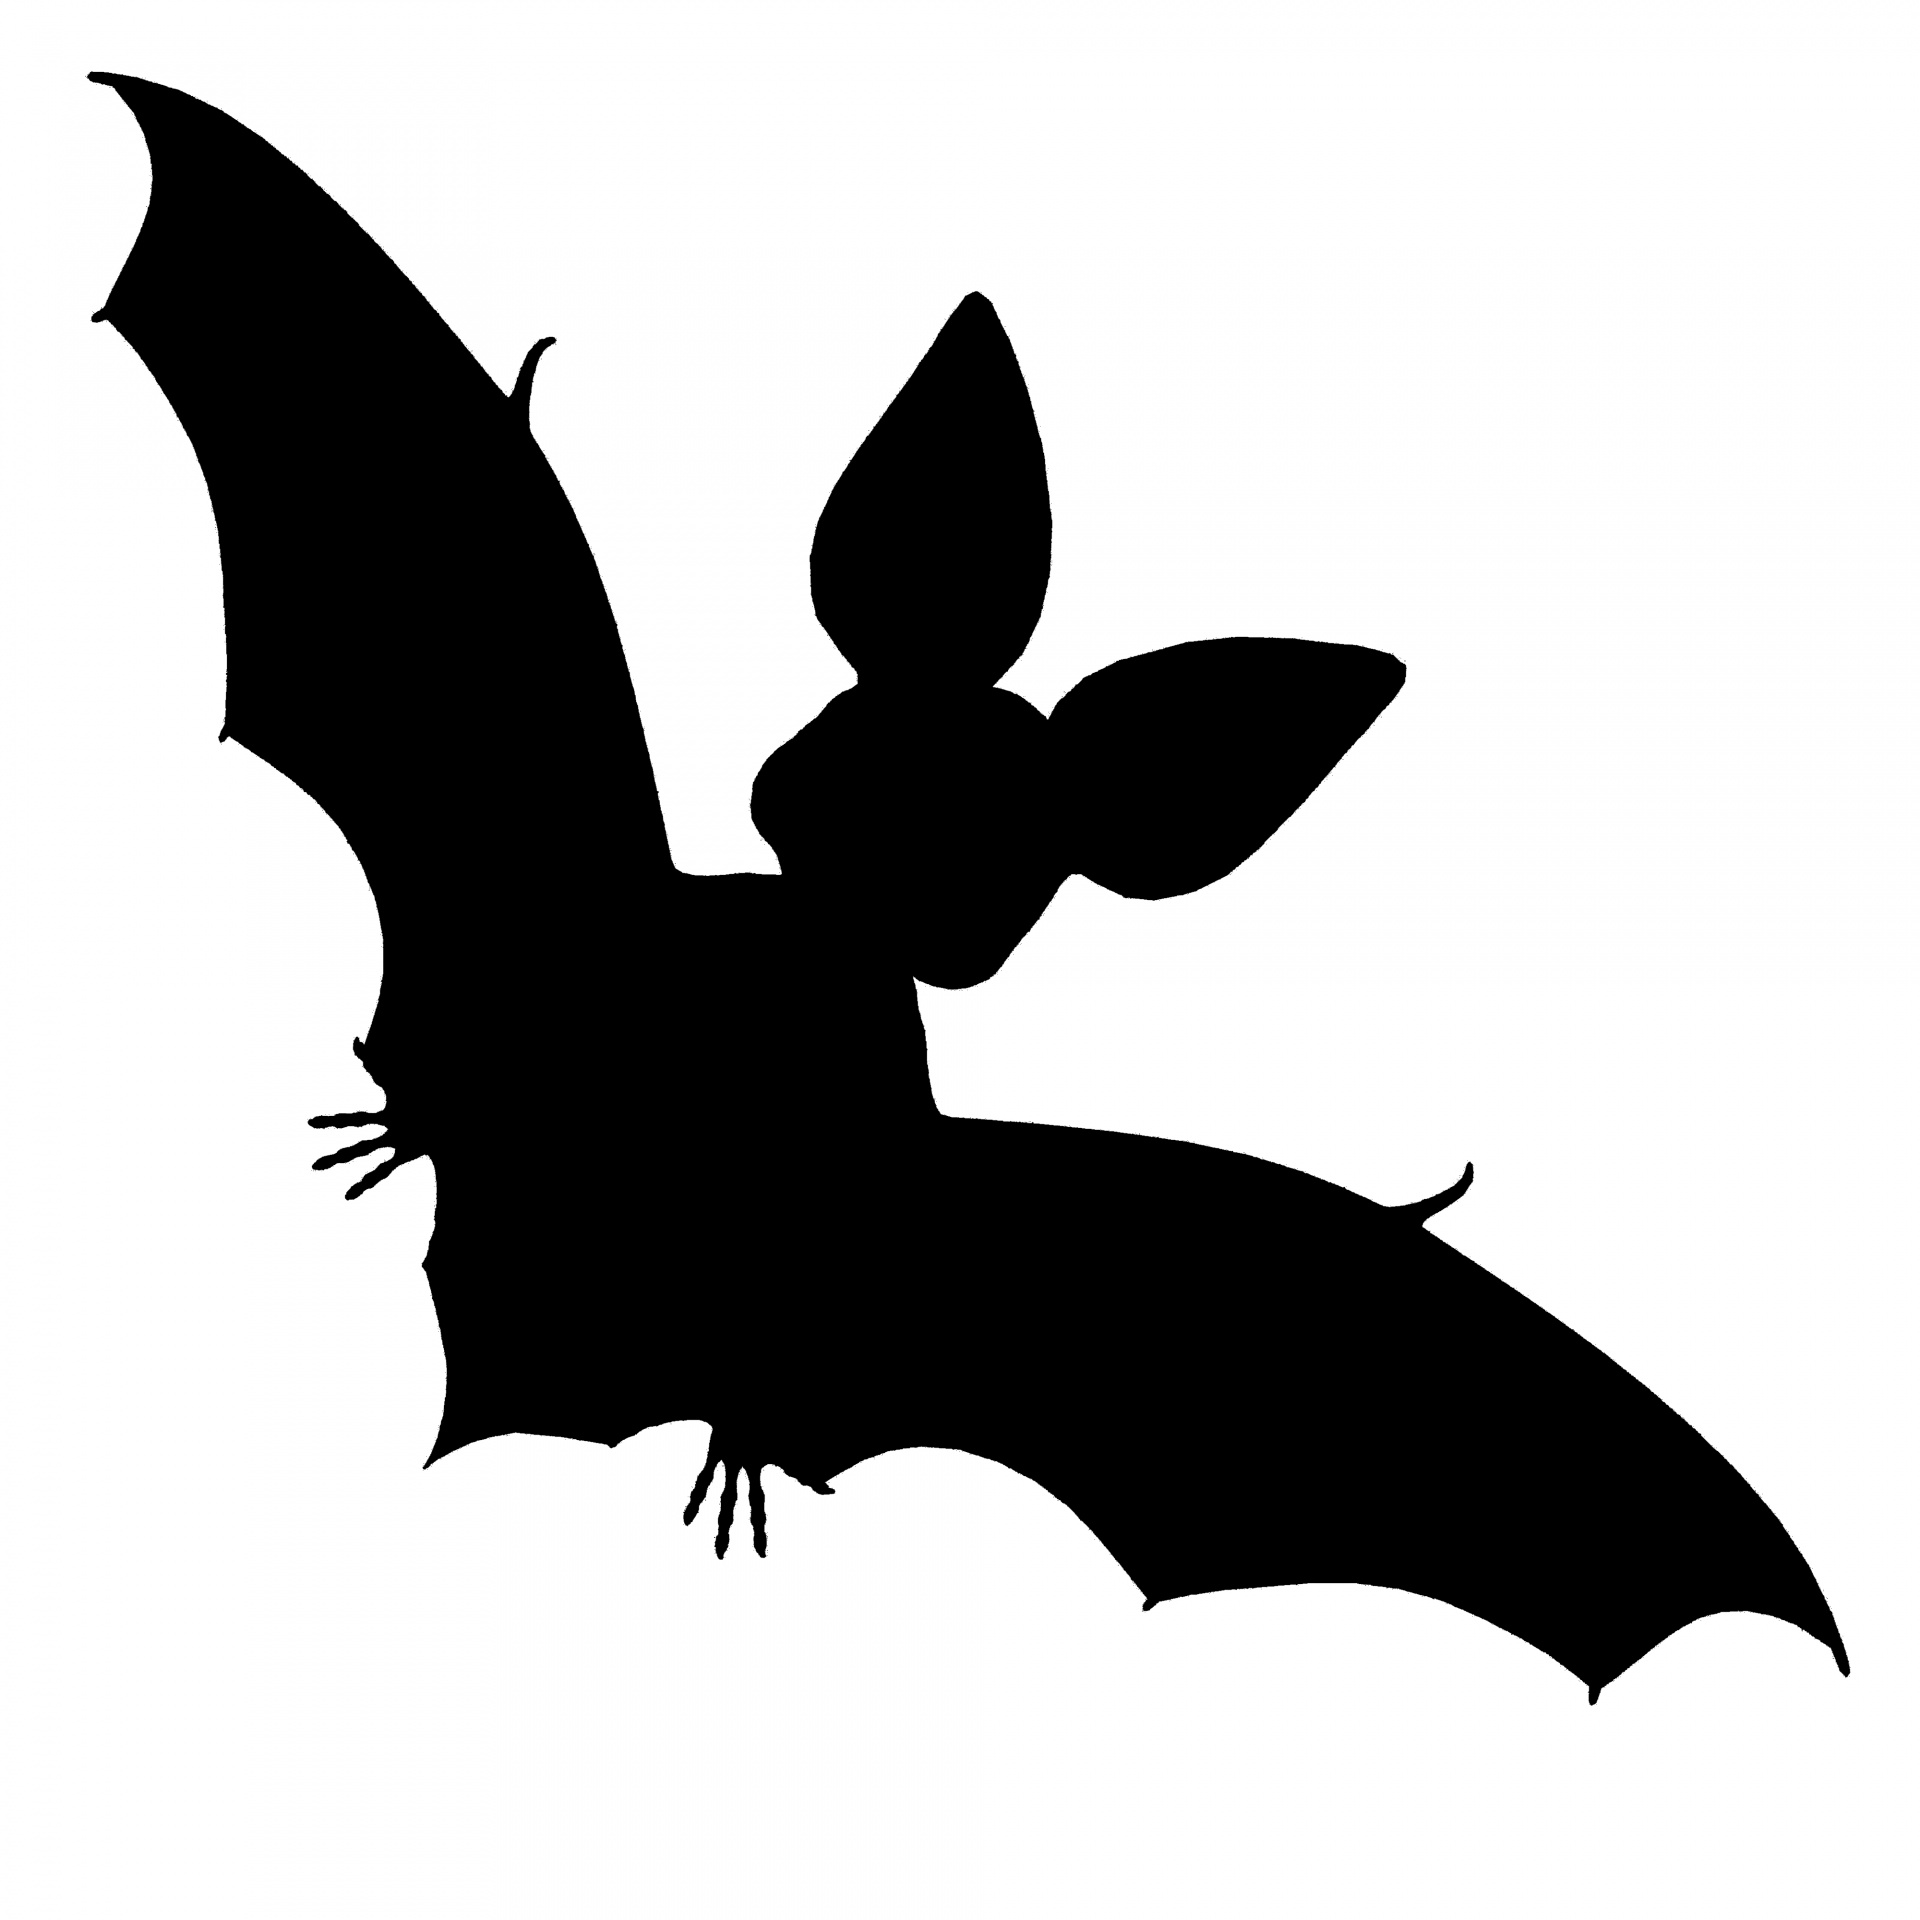 Black Bat Free Stock Photo